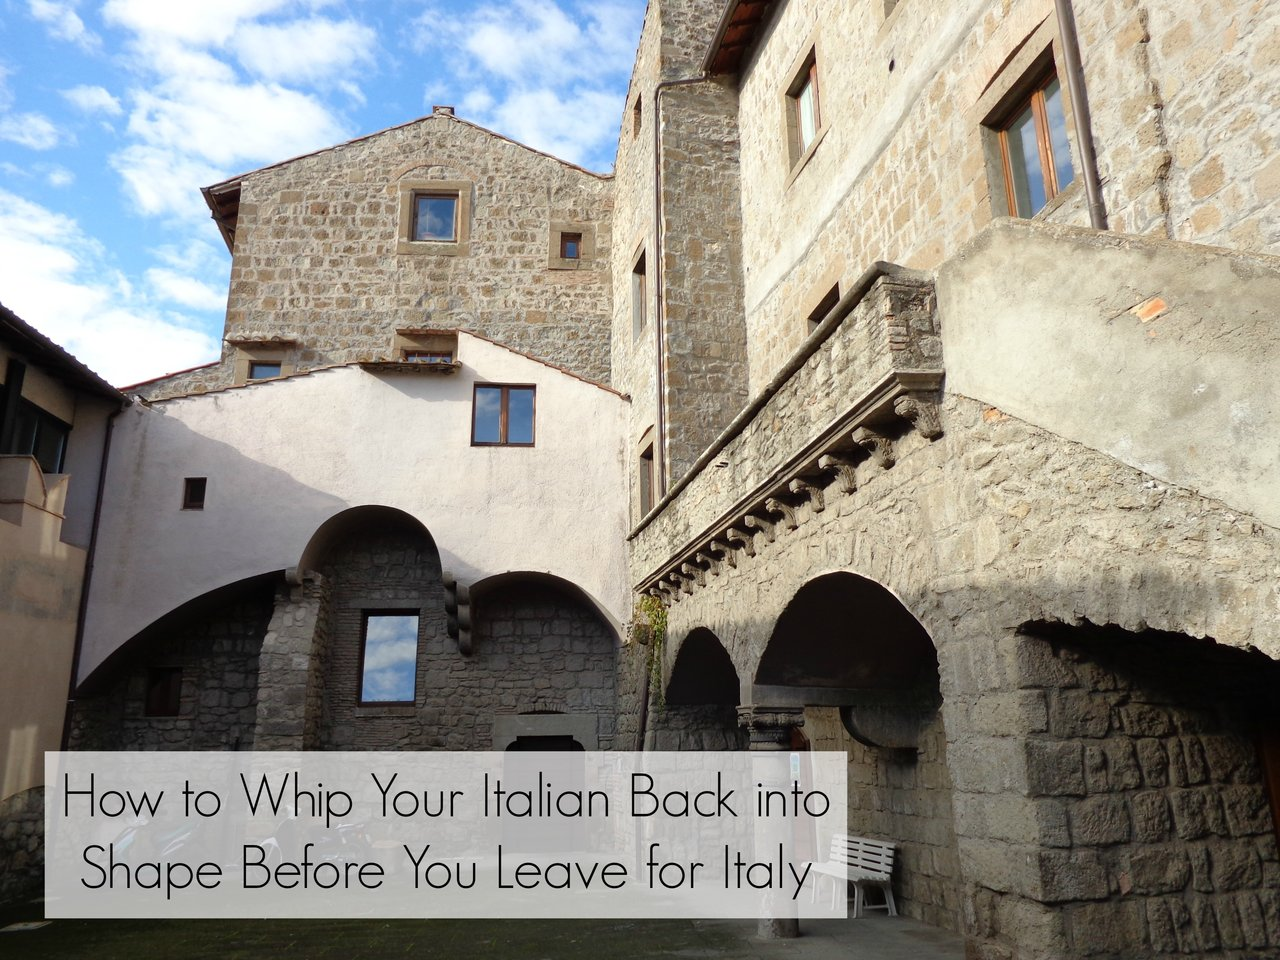 How to Whip Your Italian Back into Shape Before You Leave for Italy